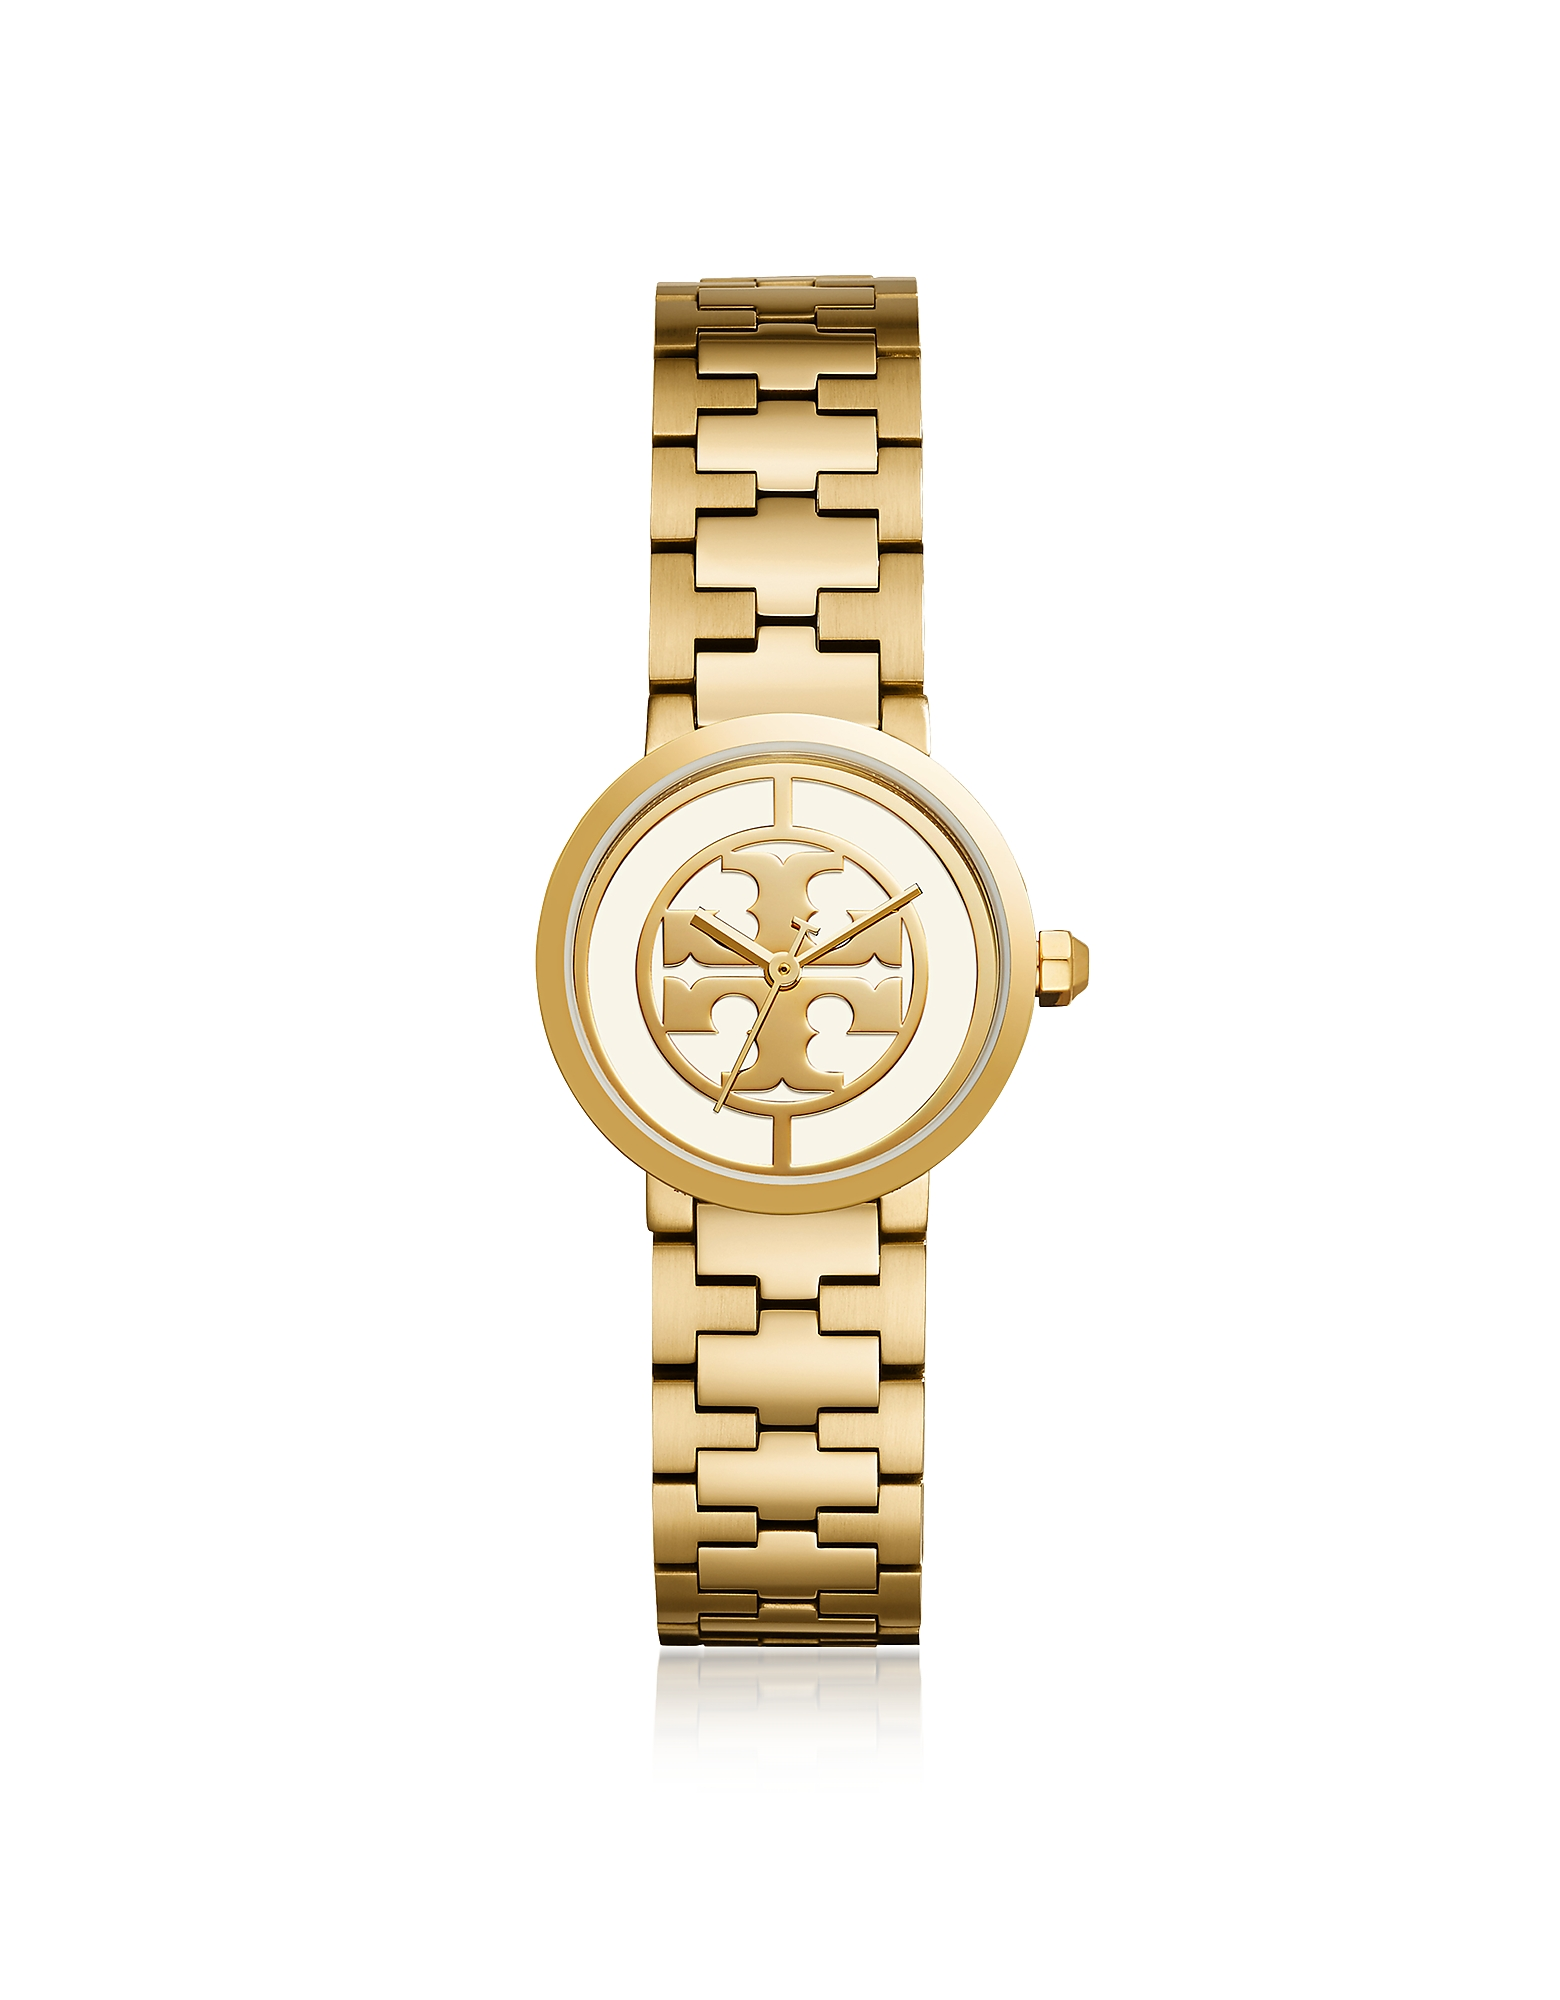 TBW4011 The Reva Gold Tone Stainless Steel 30mm Women's Watch Tory Burch